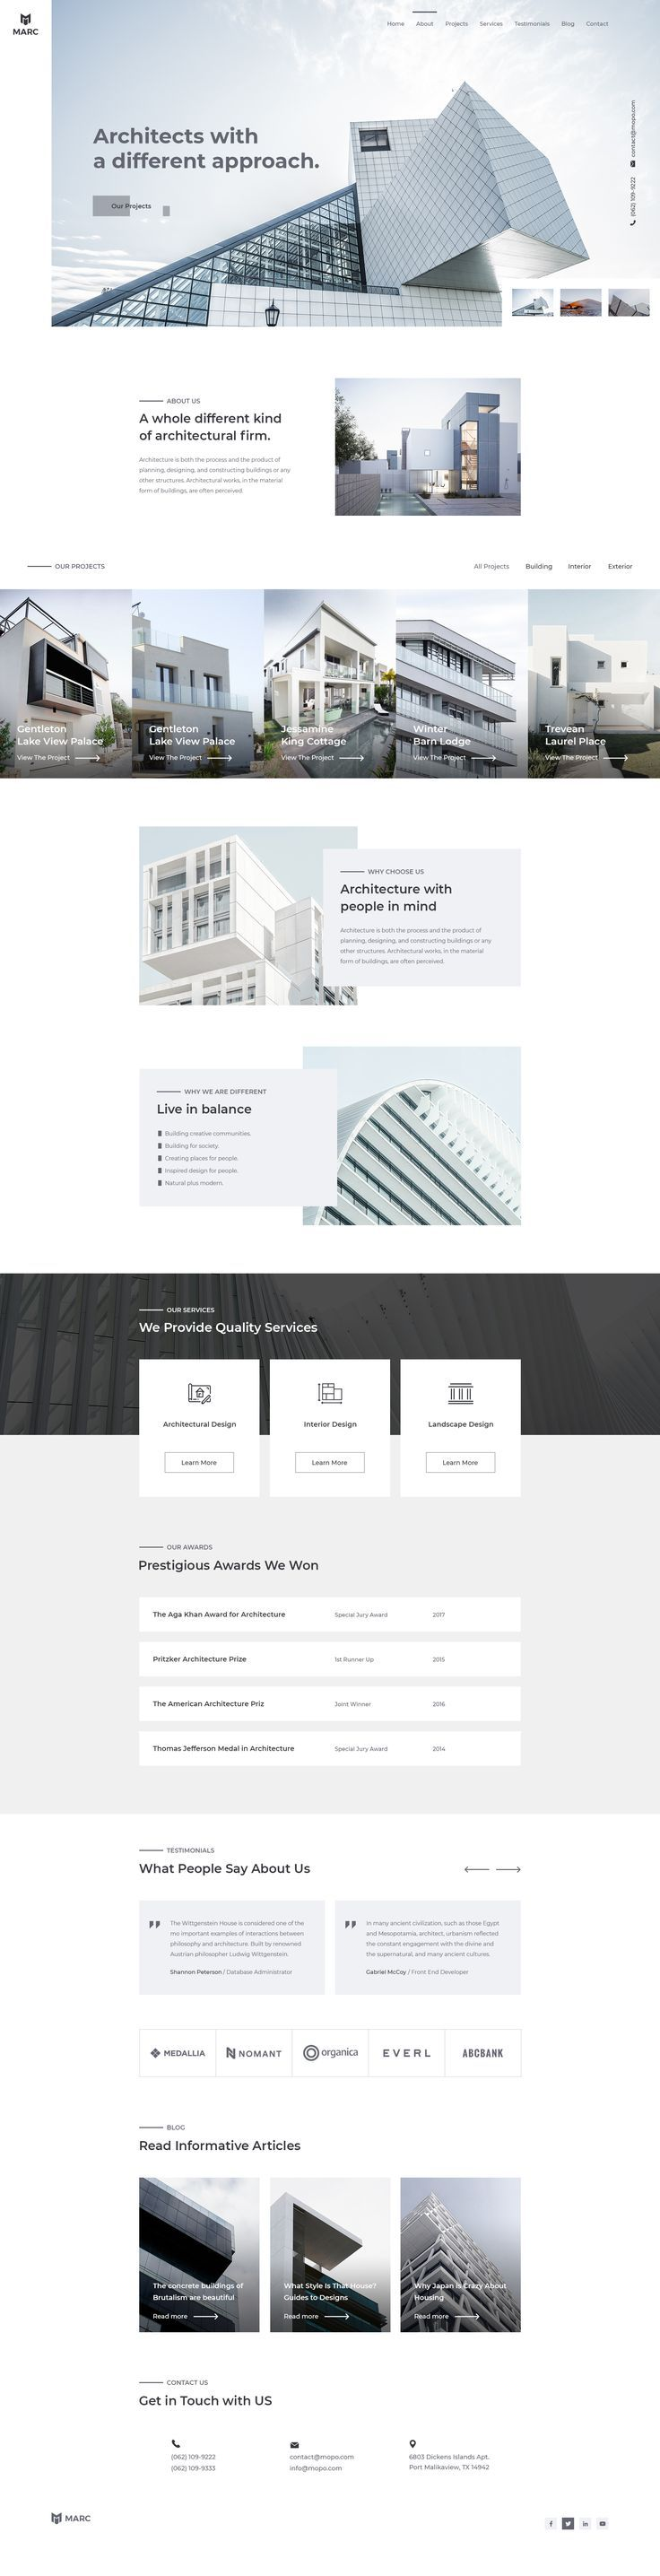 Web Design For Architecture Firms